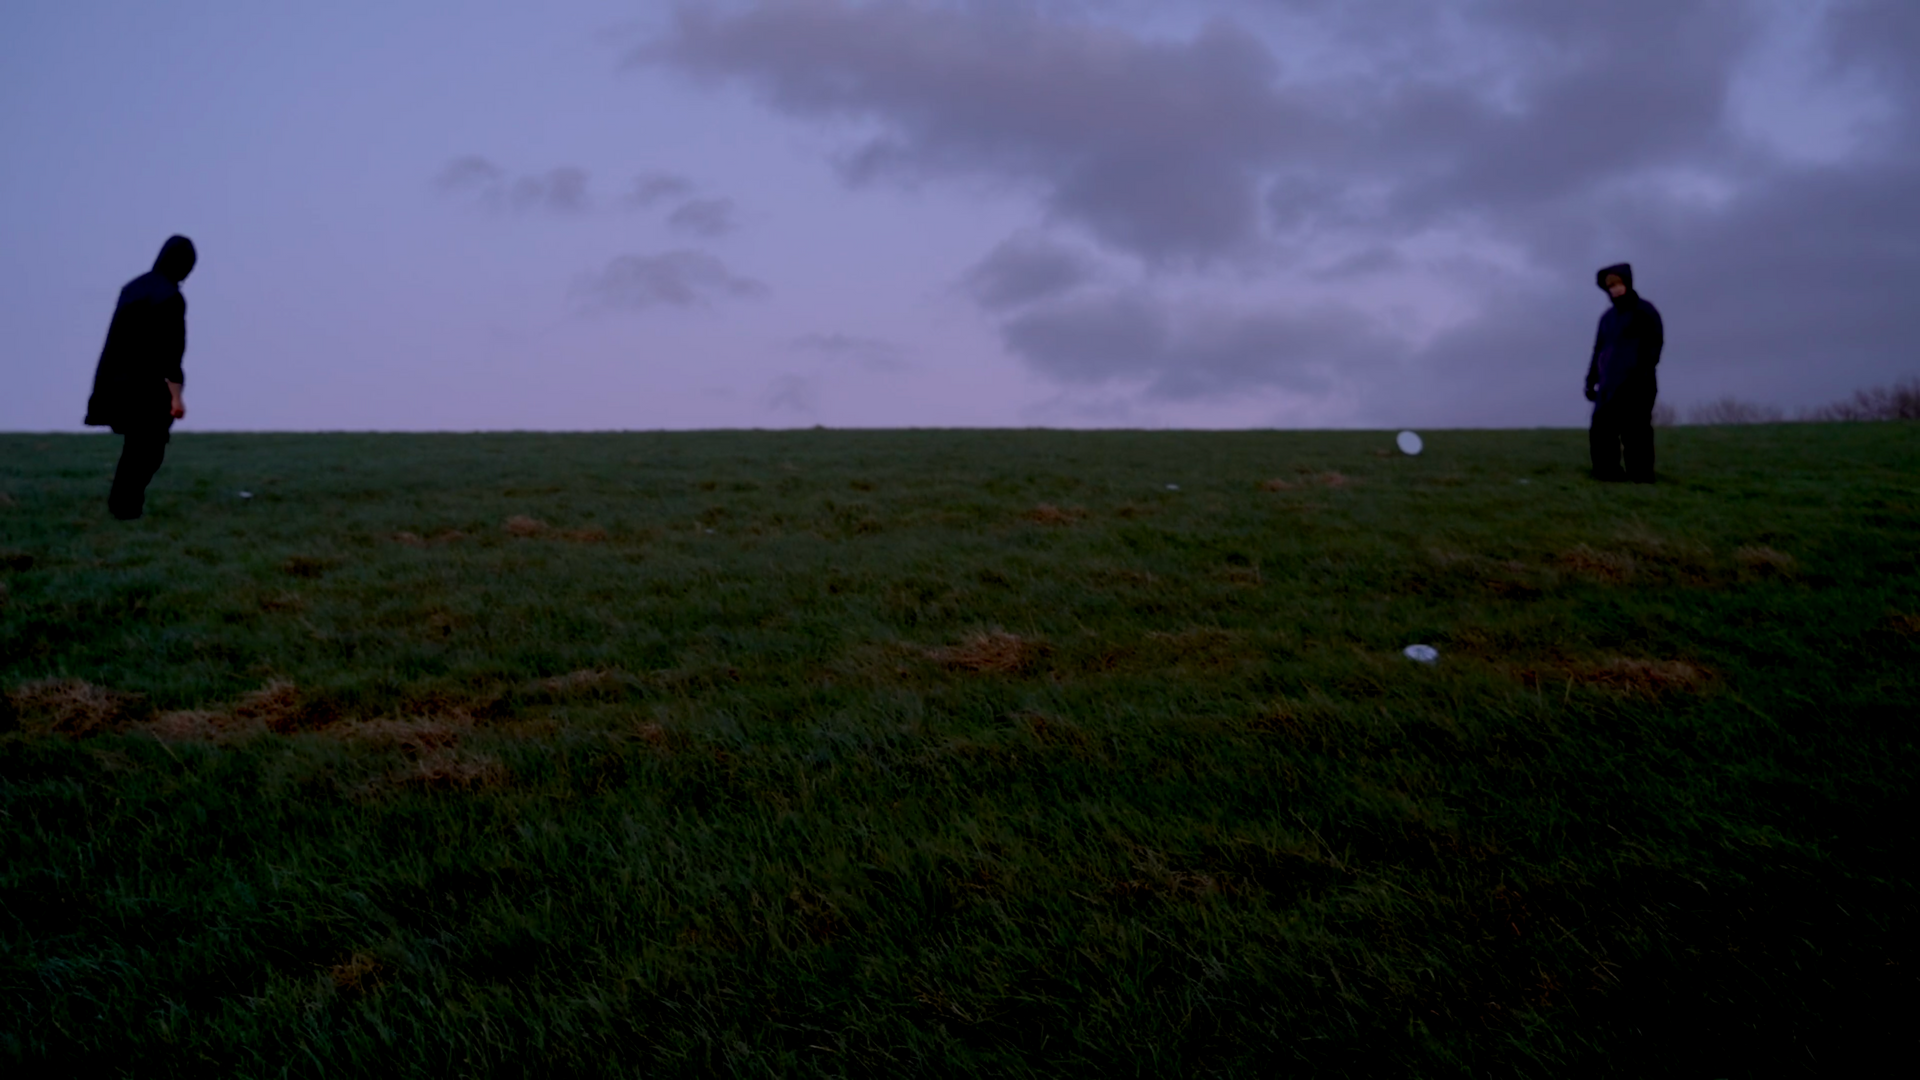 A light sometimes seen hovering over marshy ground